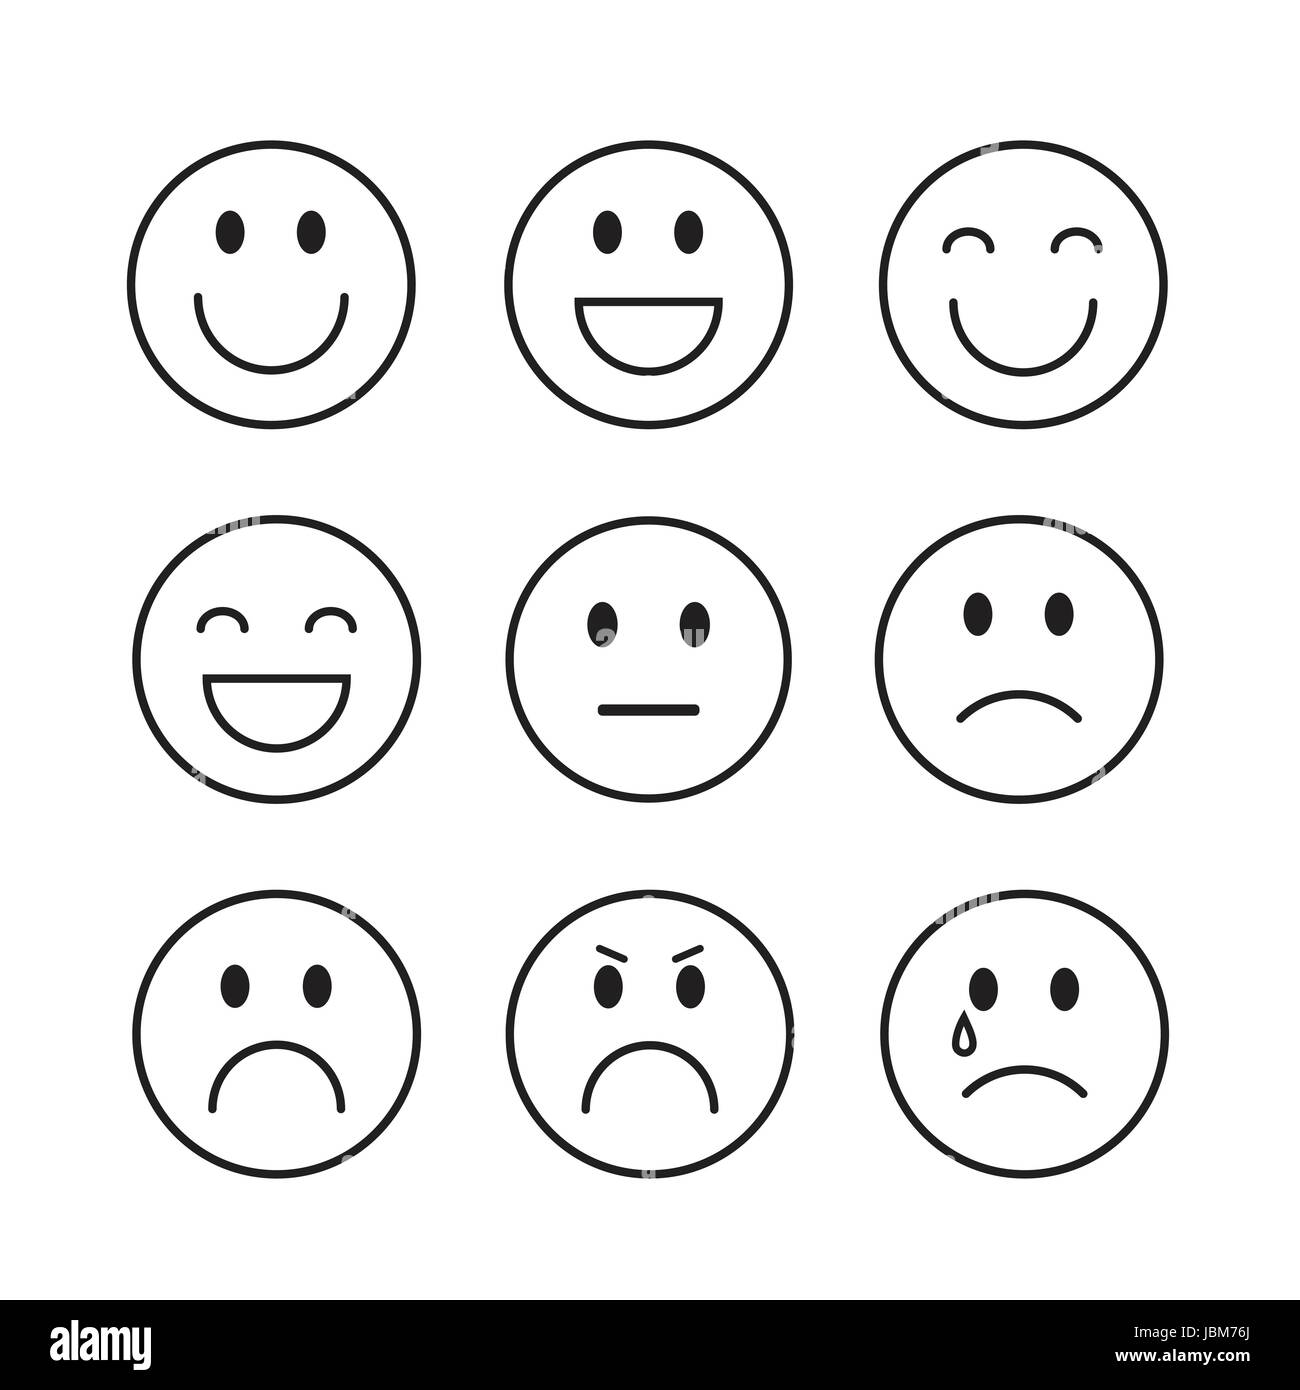 Smiling Cartoon Face People Emotion Icon Set Stock Vector